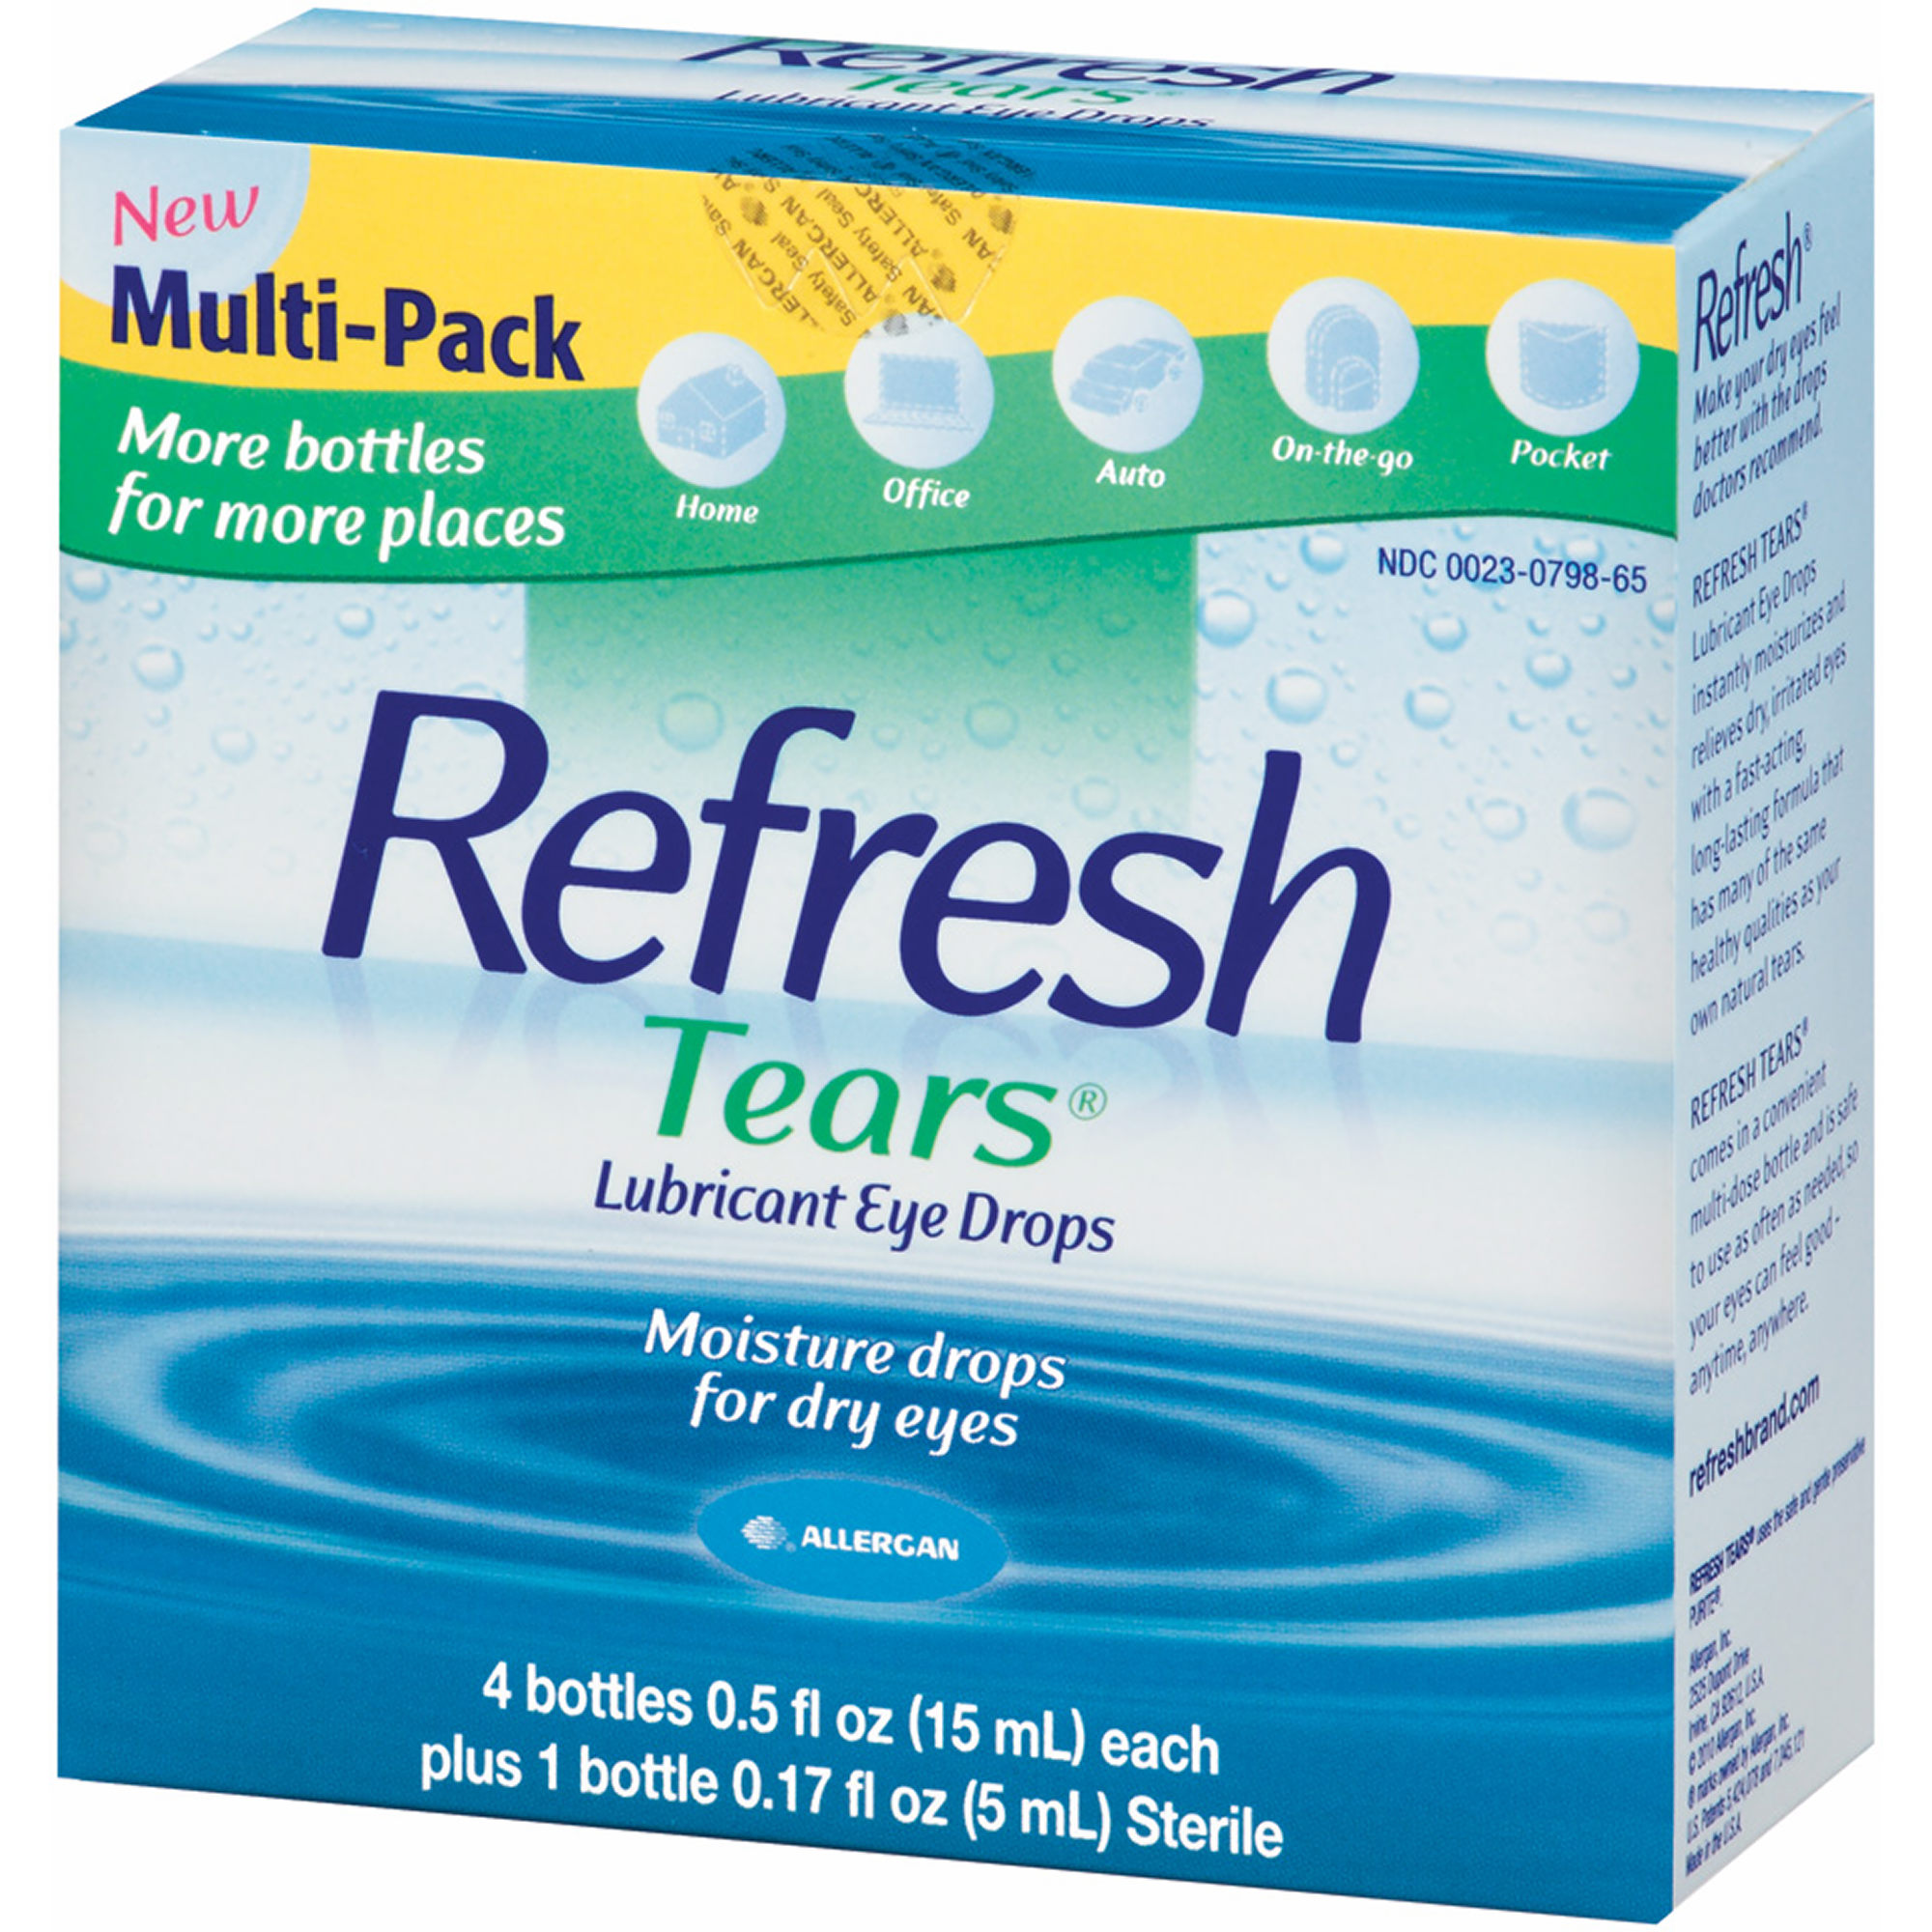 Product of Refresh Tears Lubricant Eye Drops Multipack, 4 ct./0.5 fl. oz. with Sterile Drops Bottle, 0.17 oz. - [Bulk Savings]